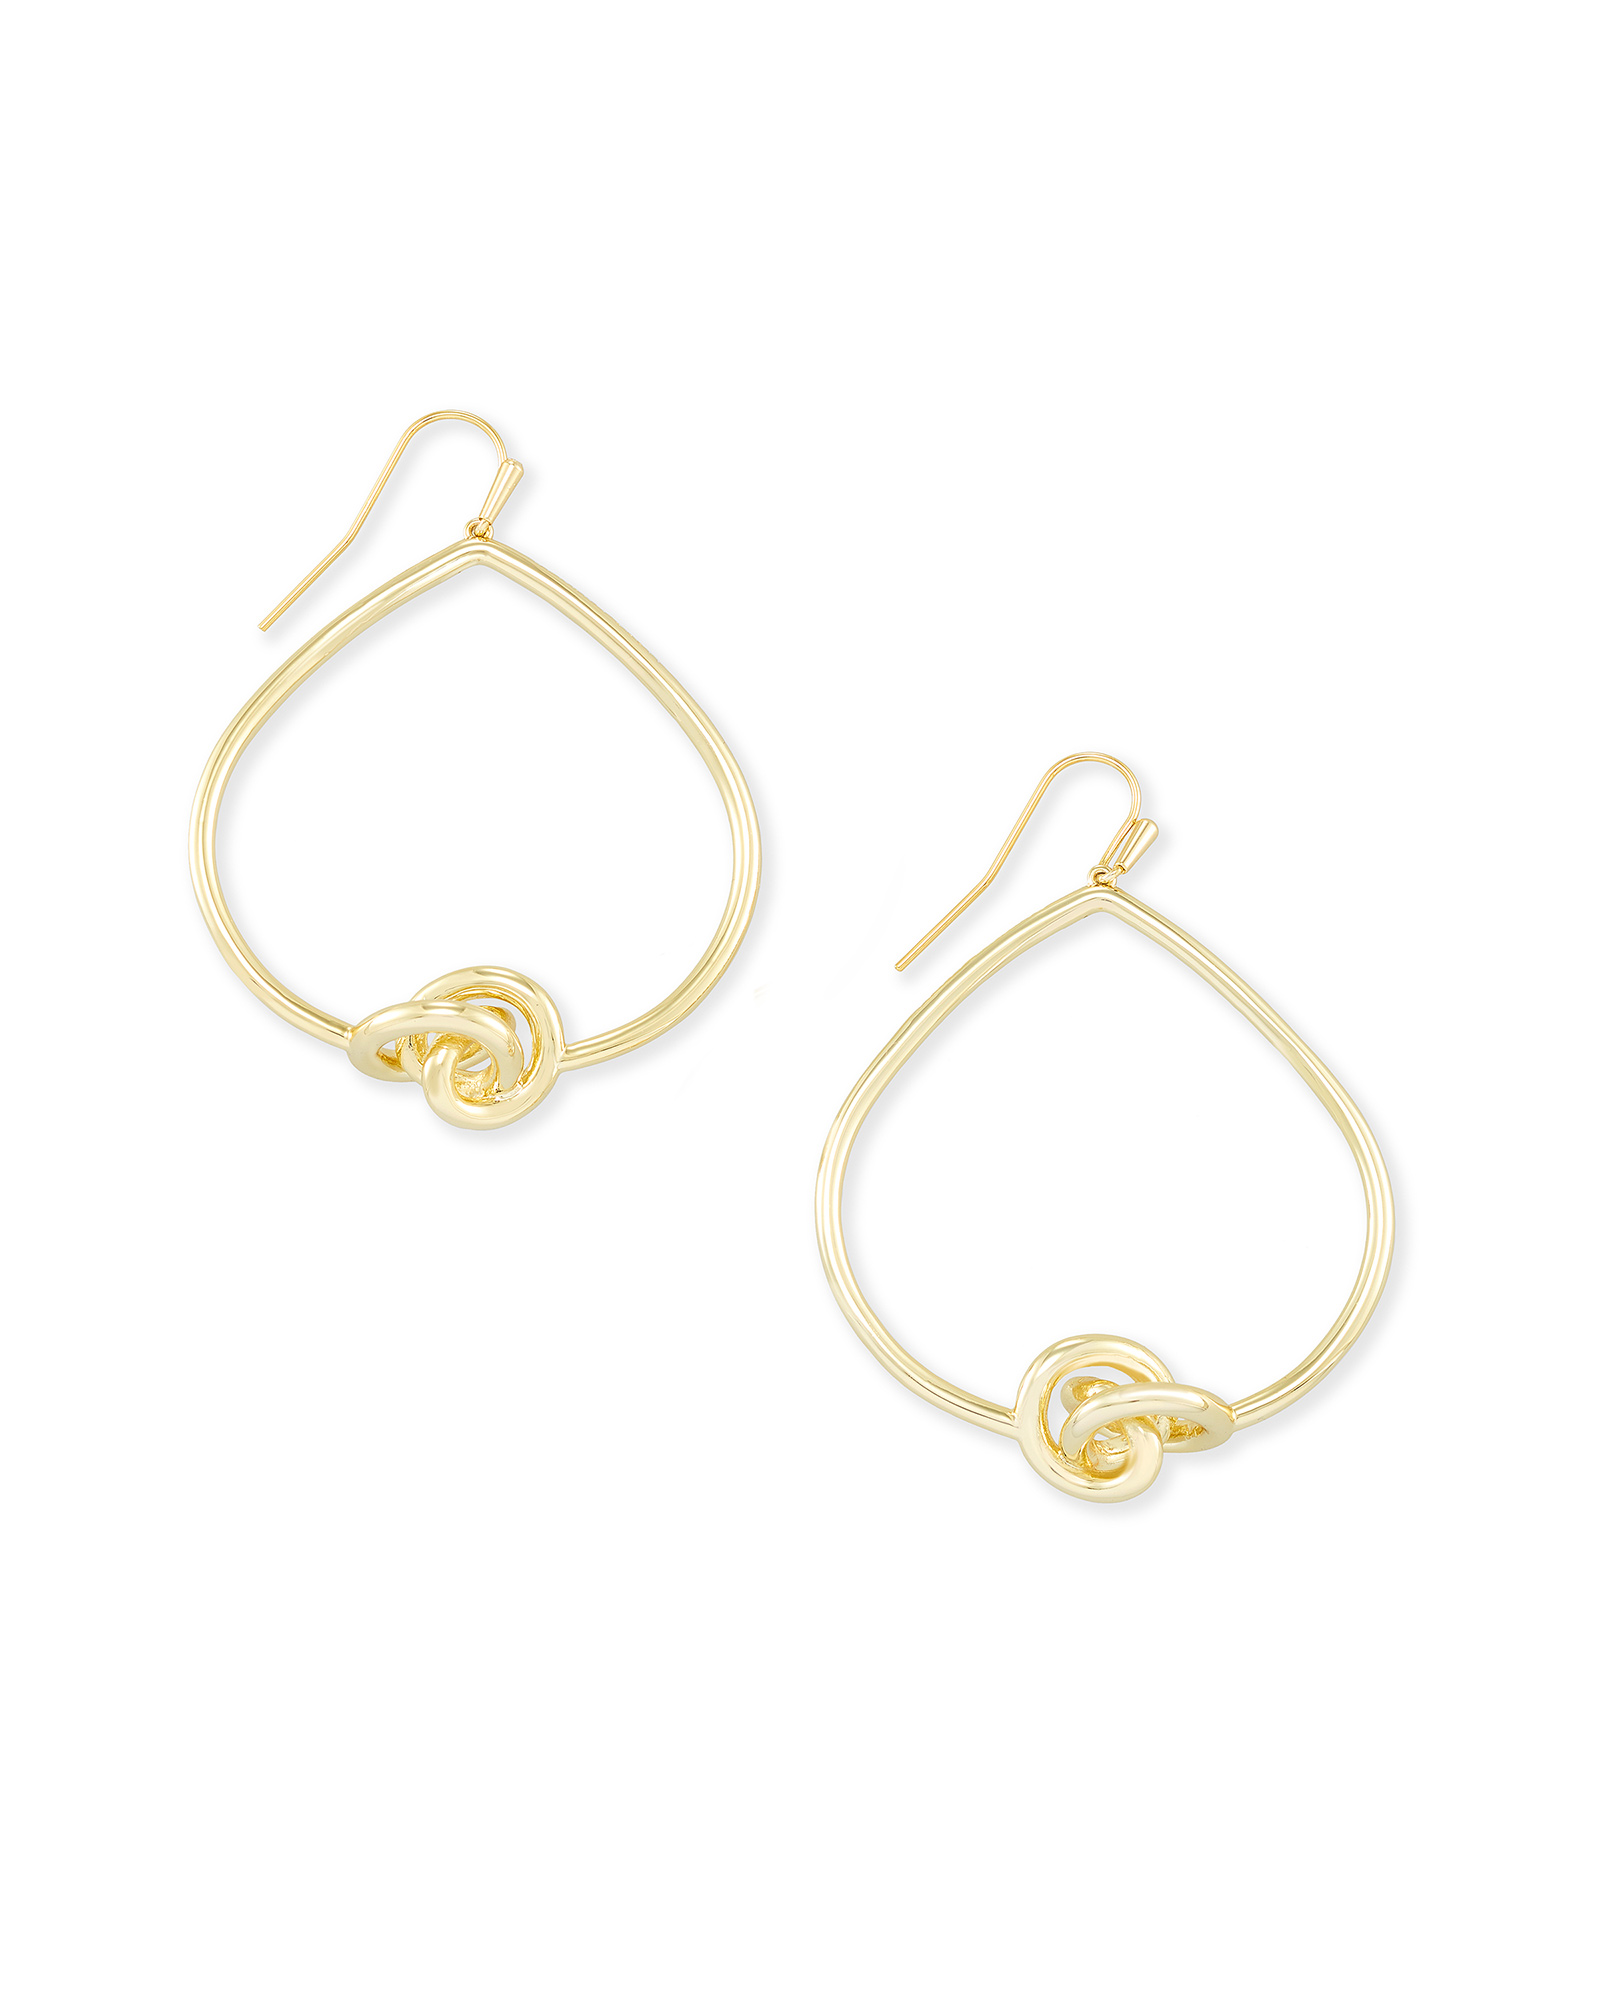 Presleigh Love Knot Open Frame Earrings in Gold